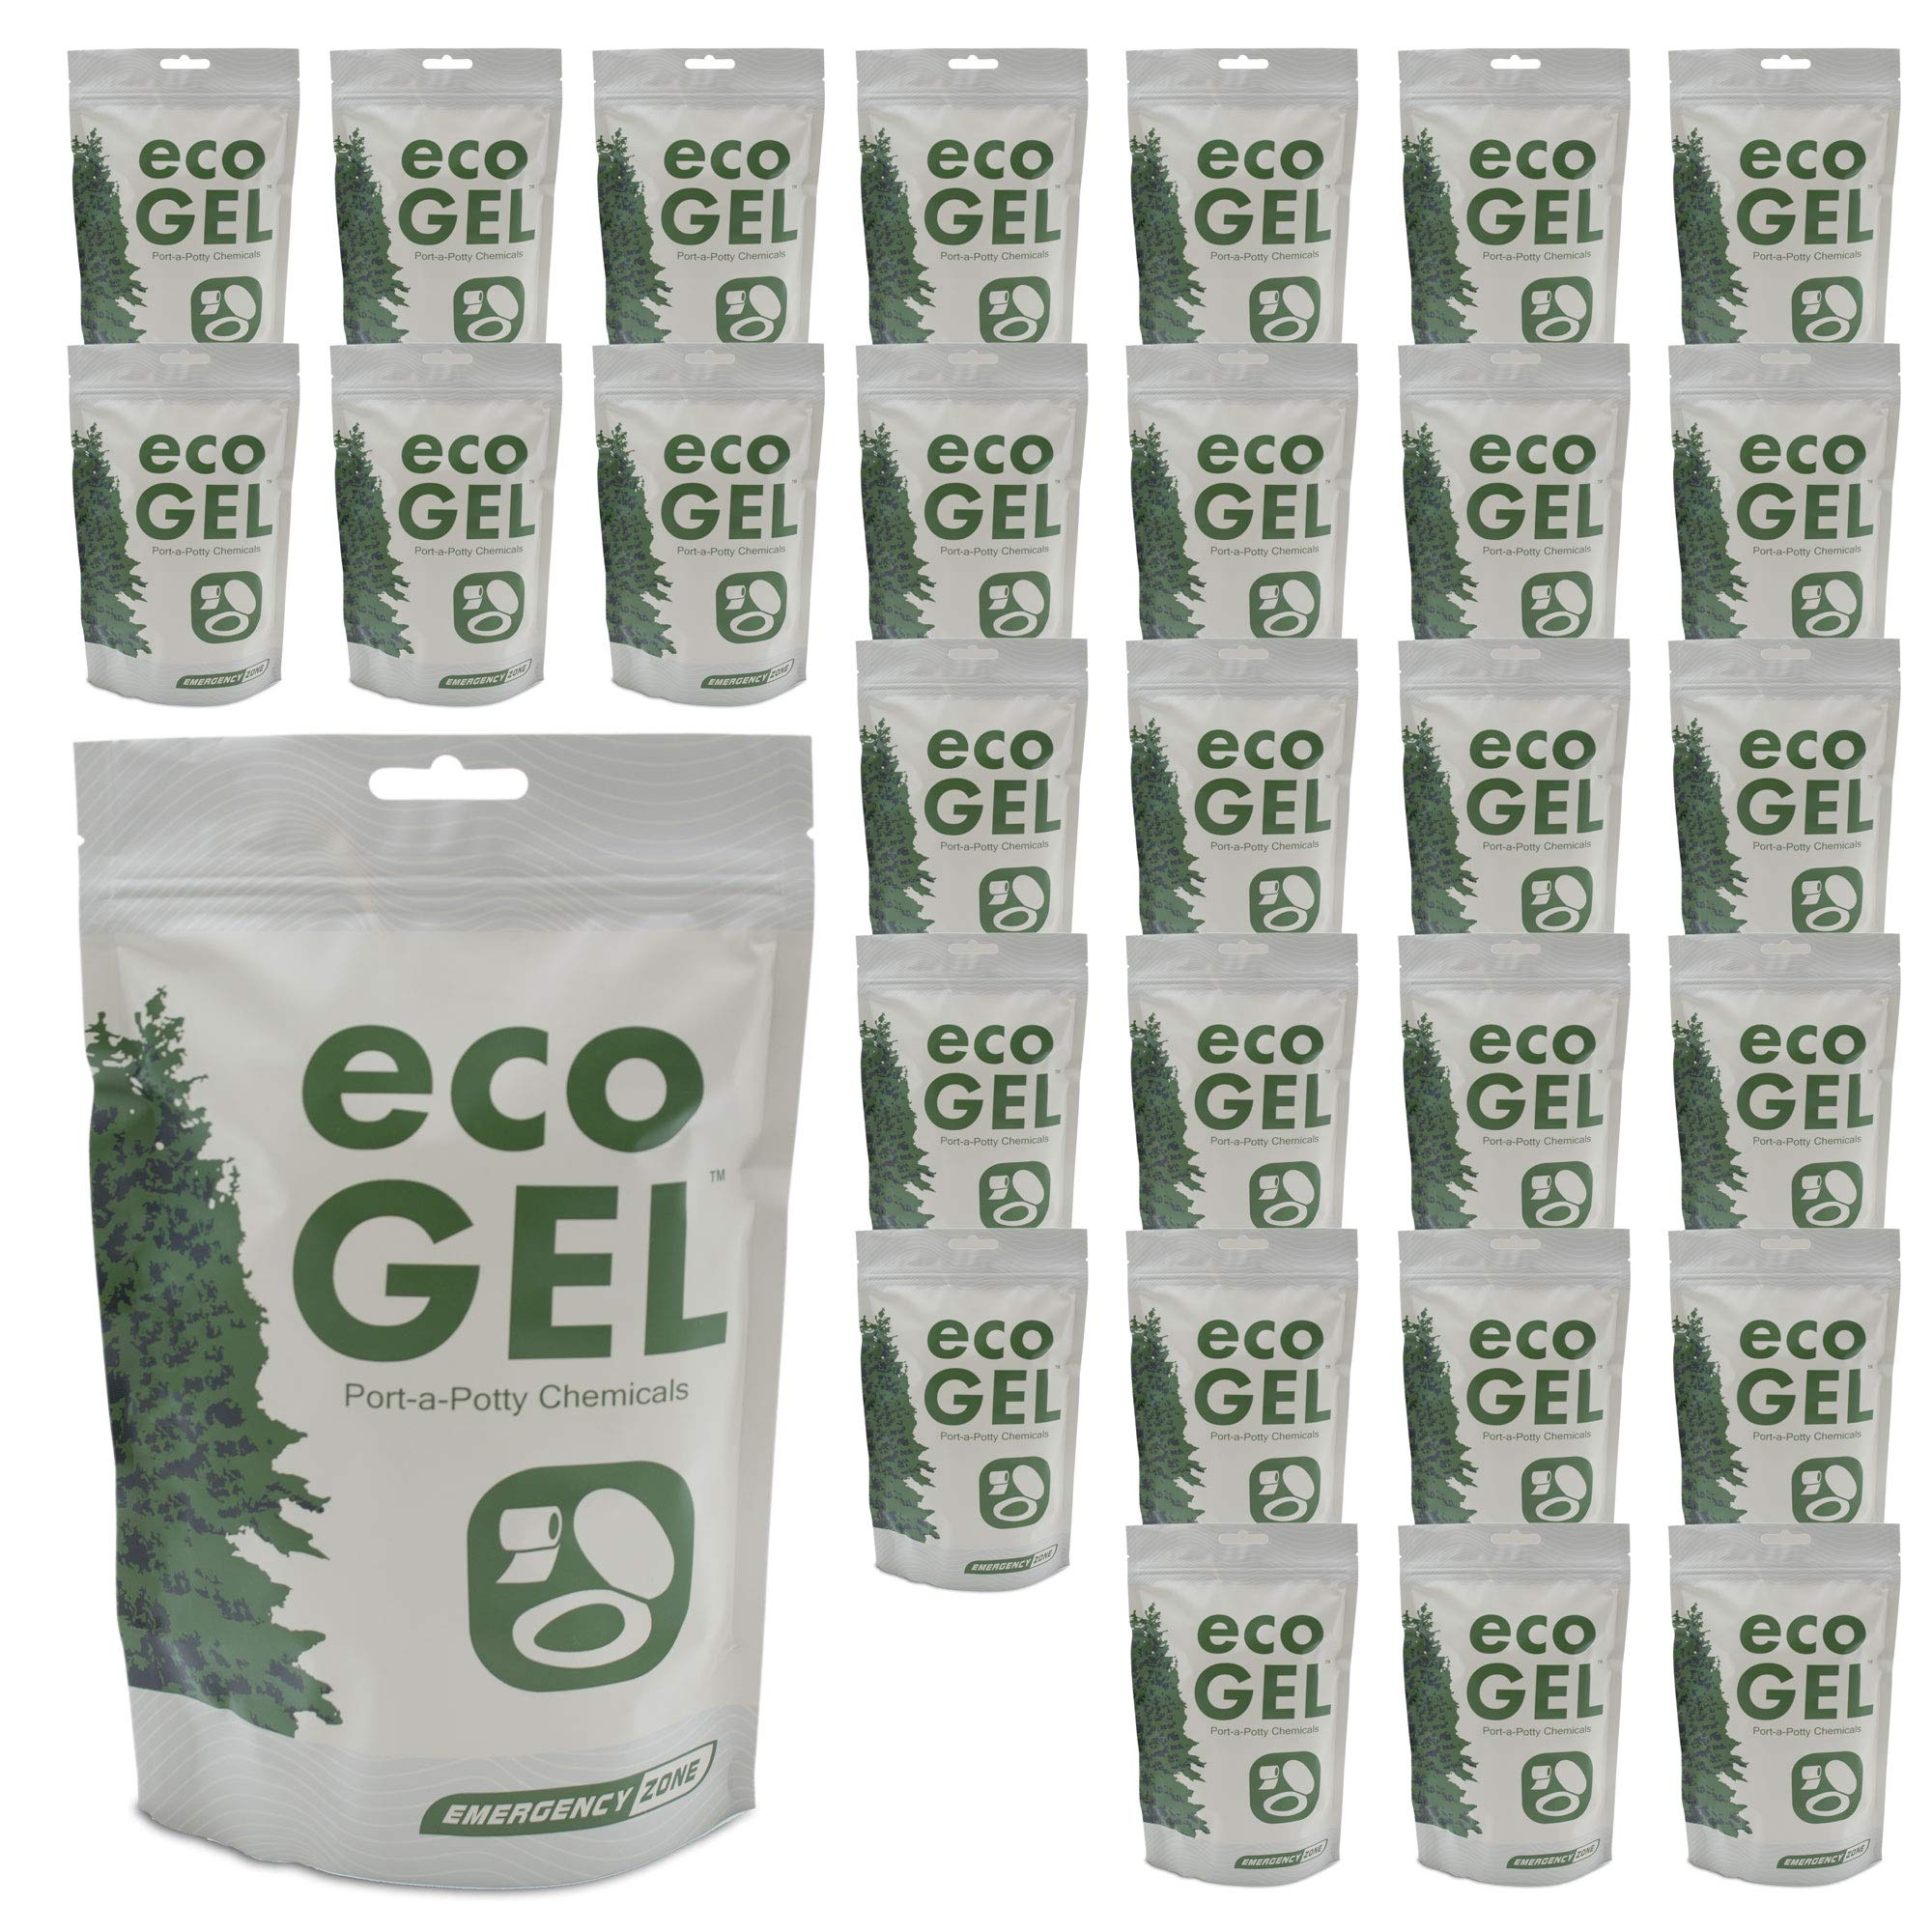 Eco Gel Port-A-Potty and Emergency Toilet Chemicals, Eco-Friendly Liquid Waste Gelling and Deodorizing Powder. 30 Pack